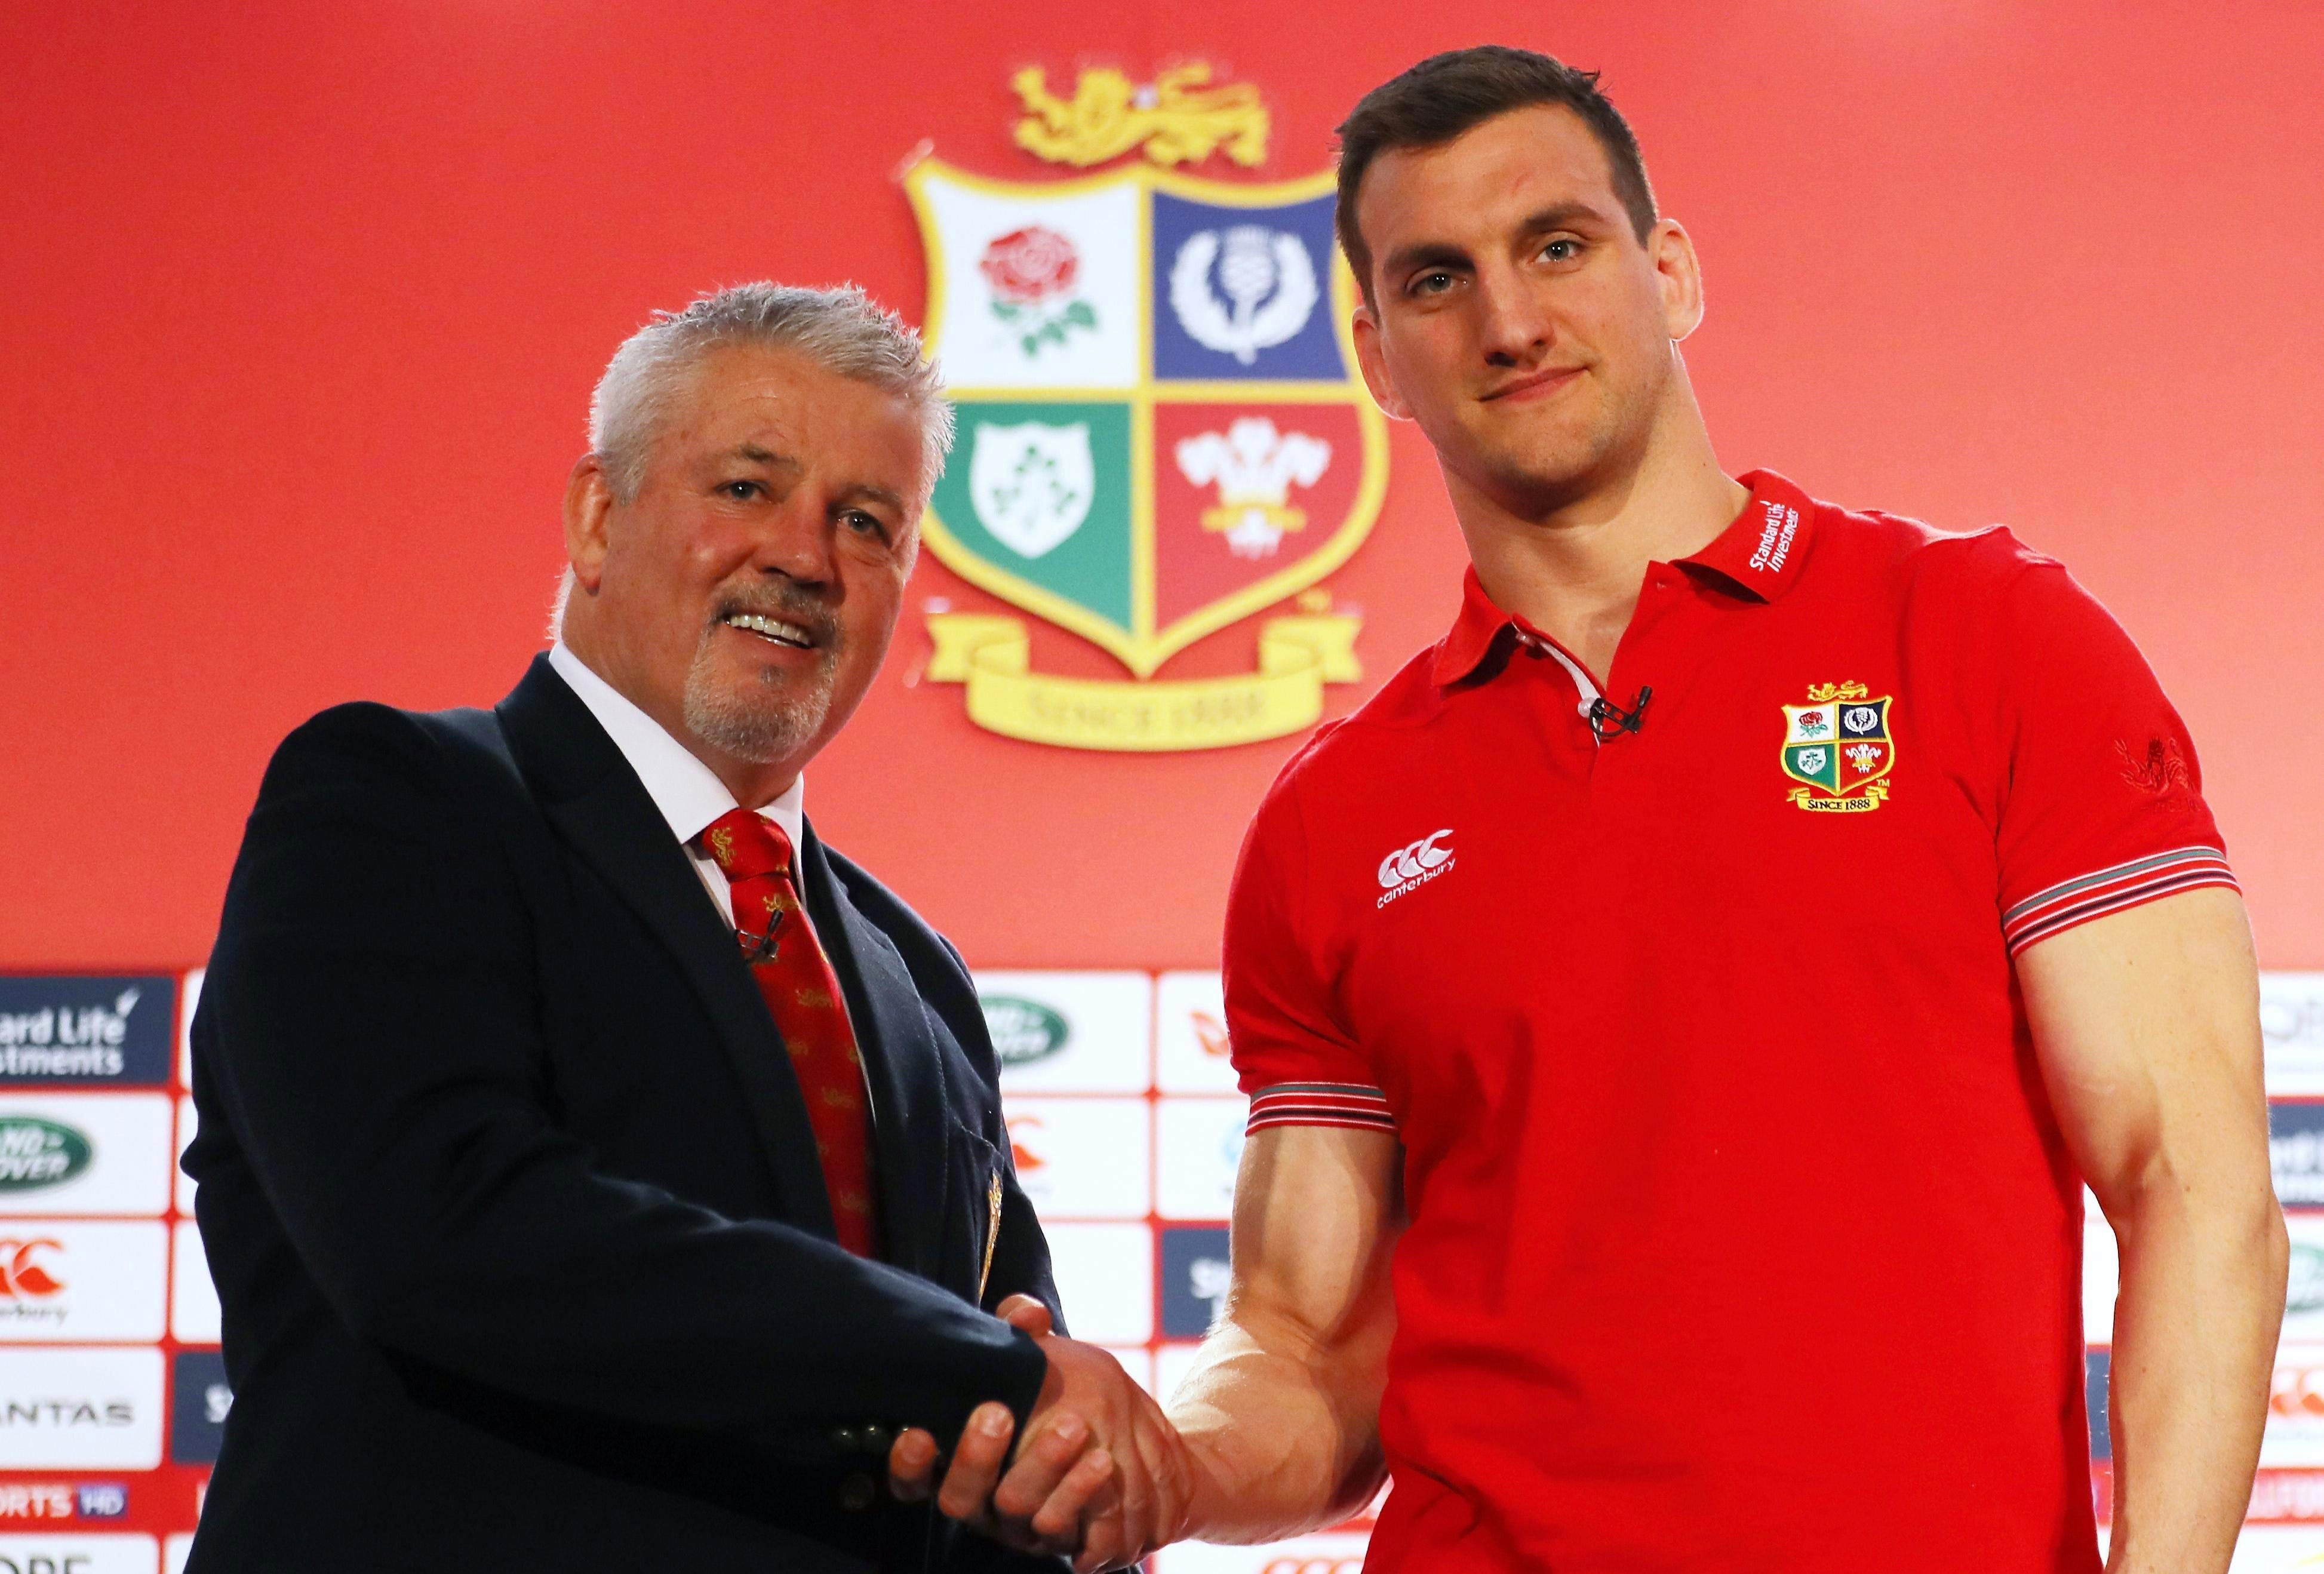 Wales and Lions coach Warren Gatland has admitted his disappointment at Warburton's retirement